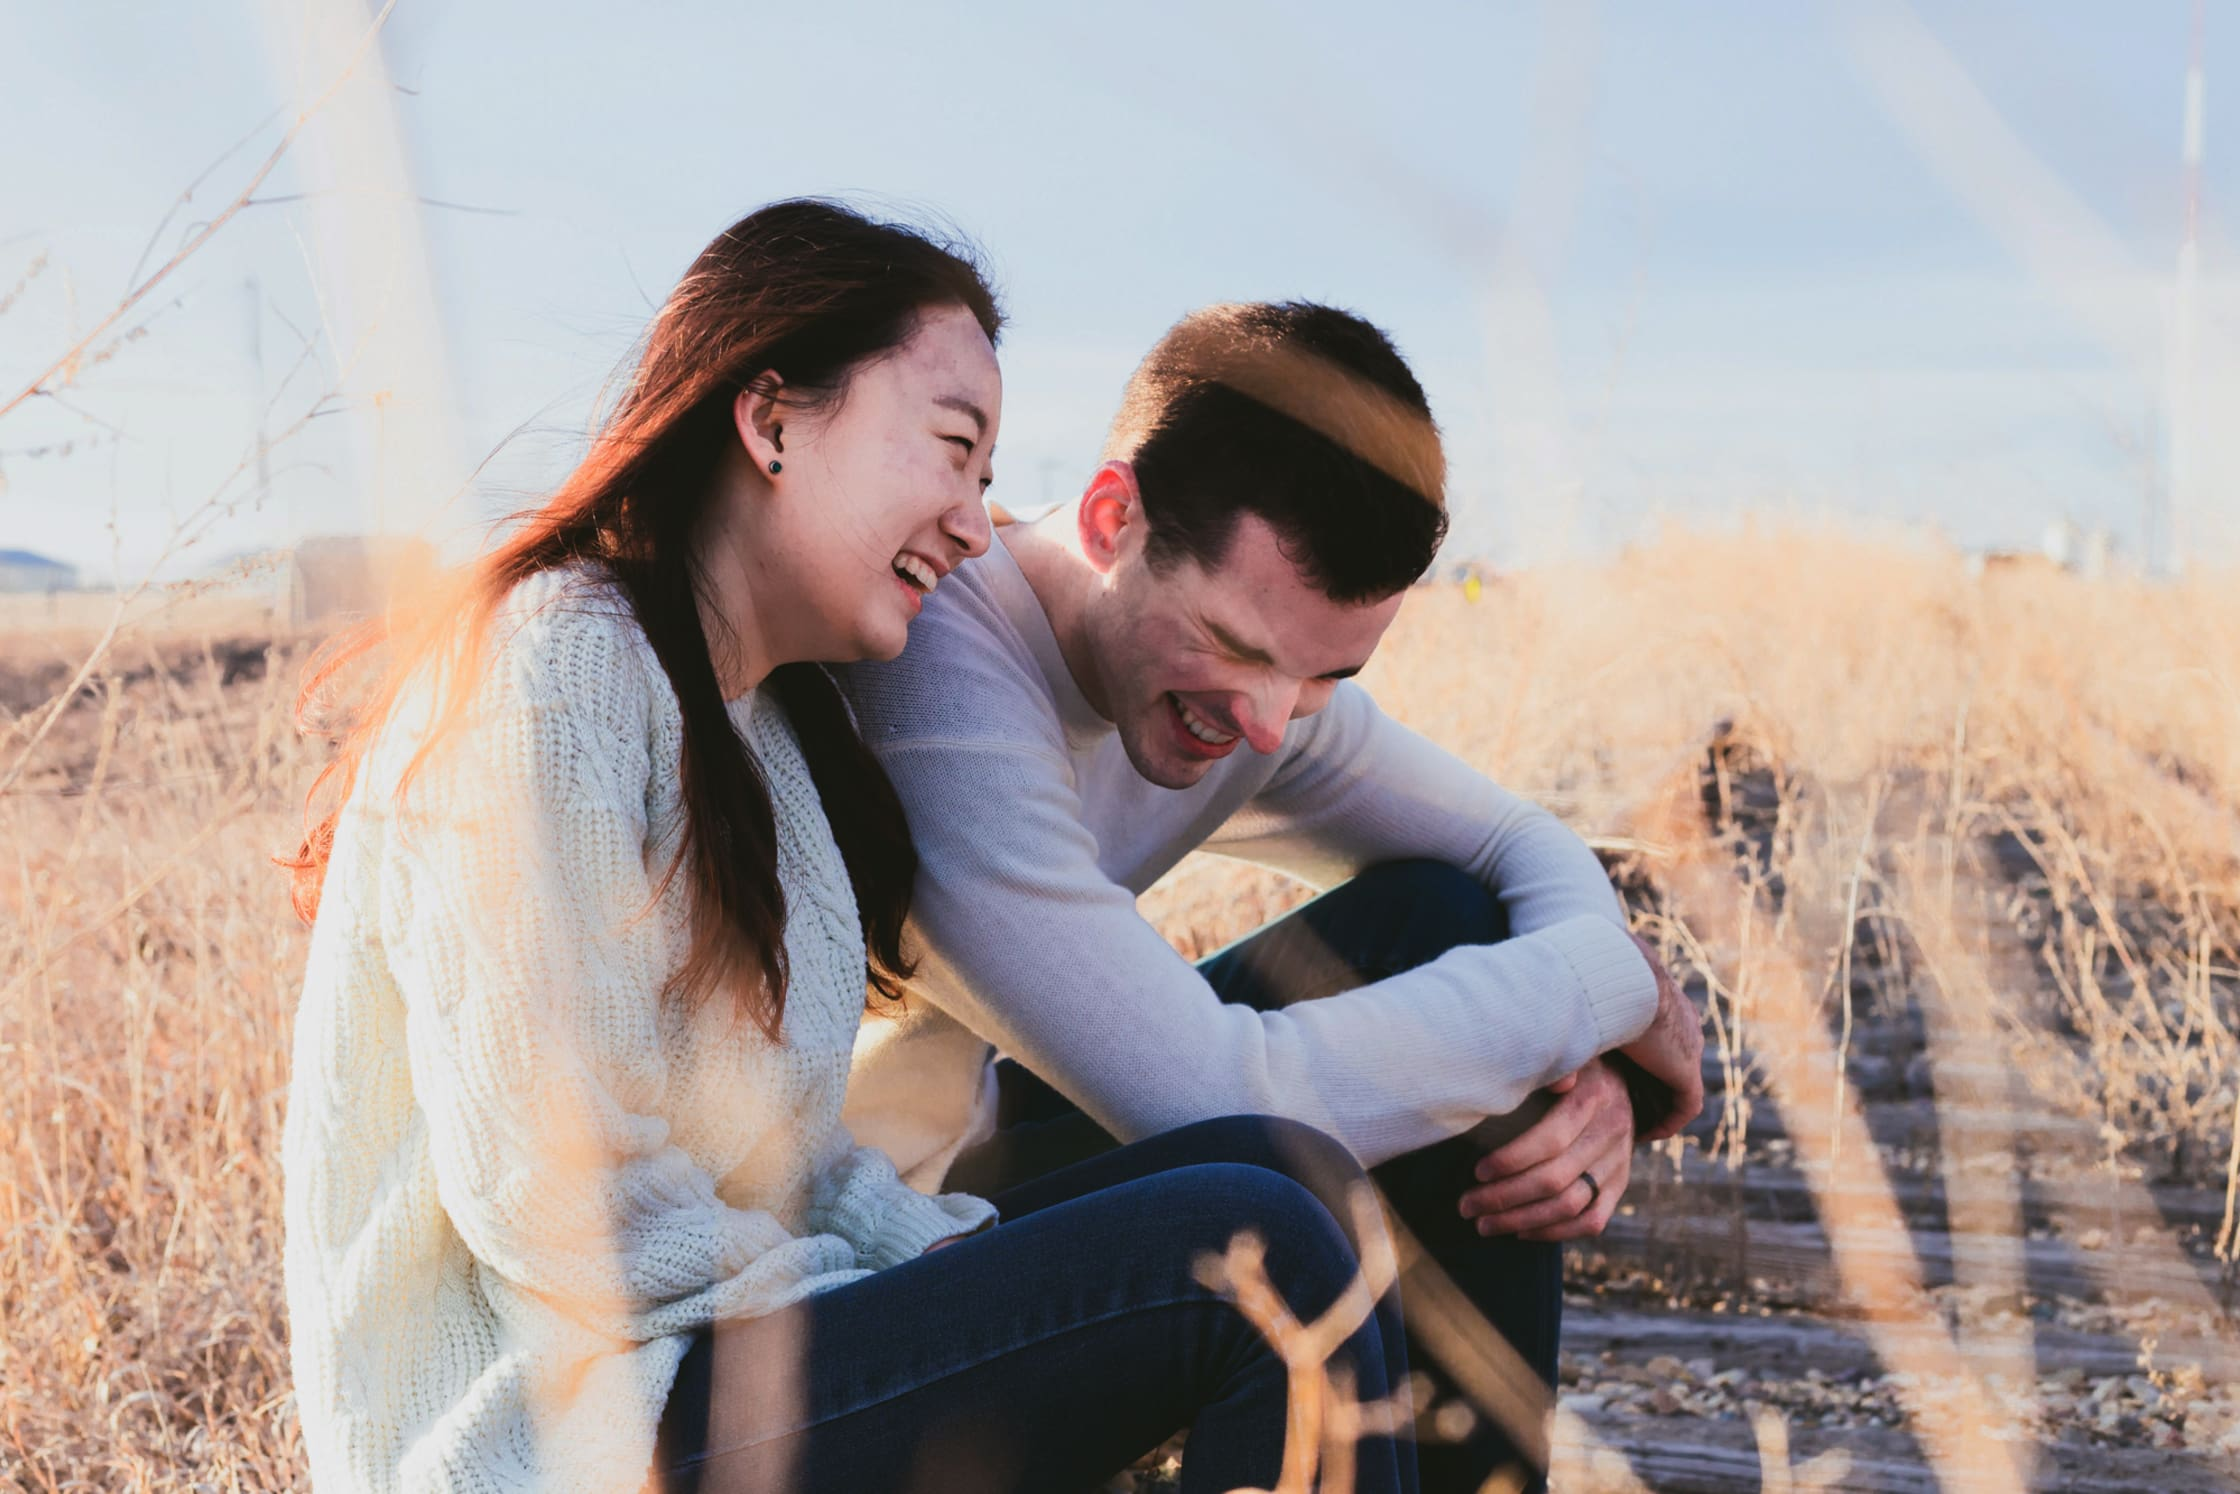 couple-laughing-together-outside-during-fall-winter.jpg